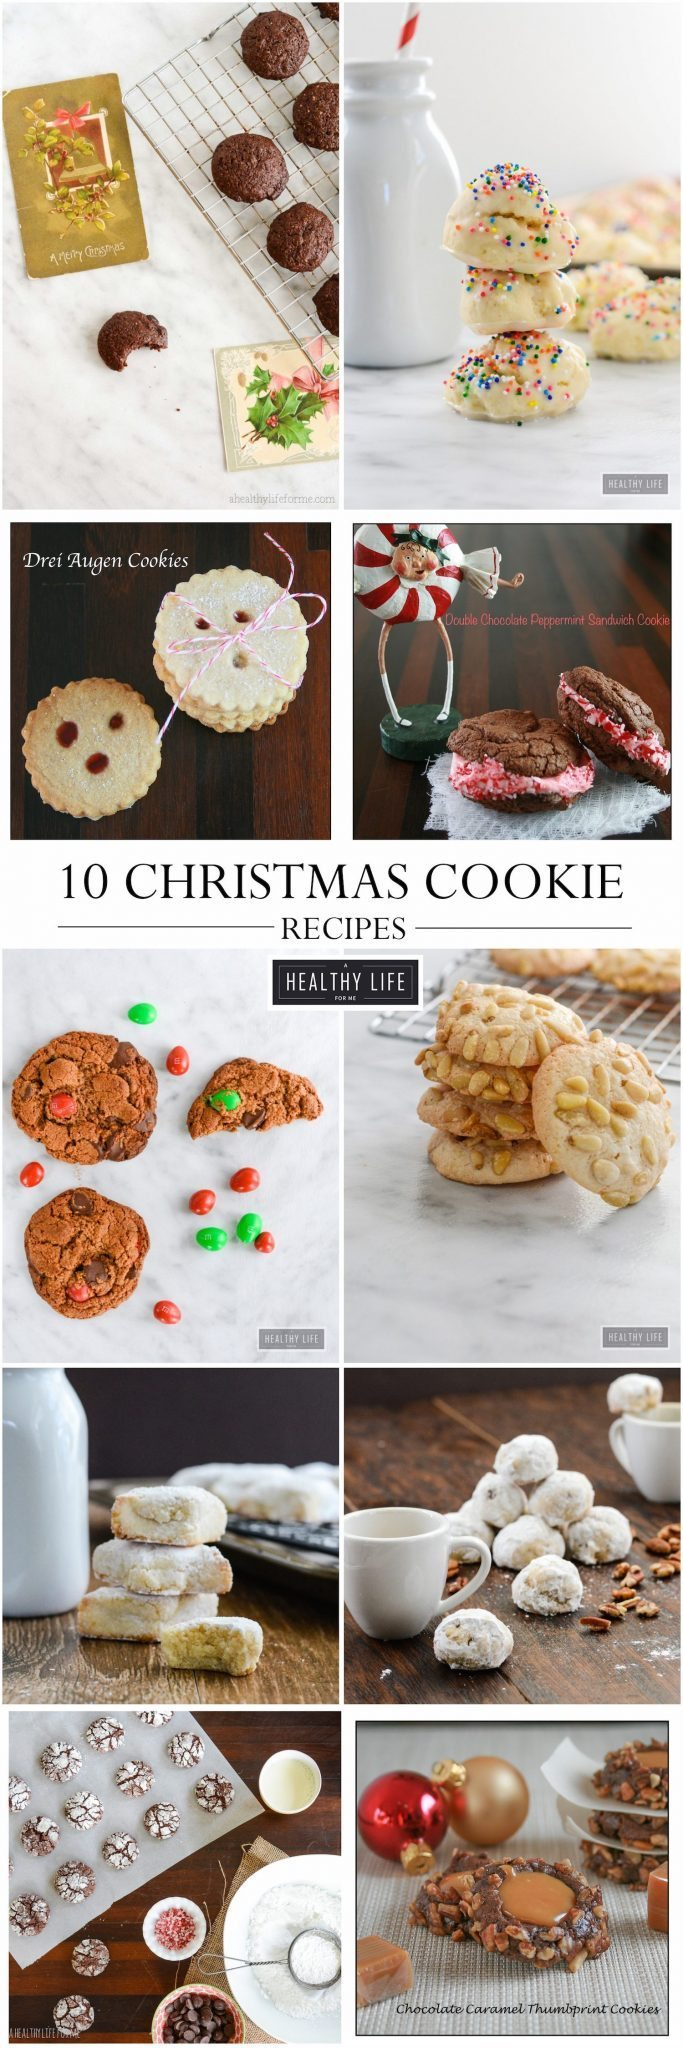 10 Christmas Cookie Recipes A Healthy Life For Me